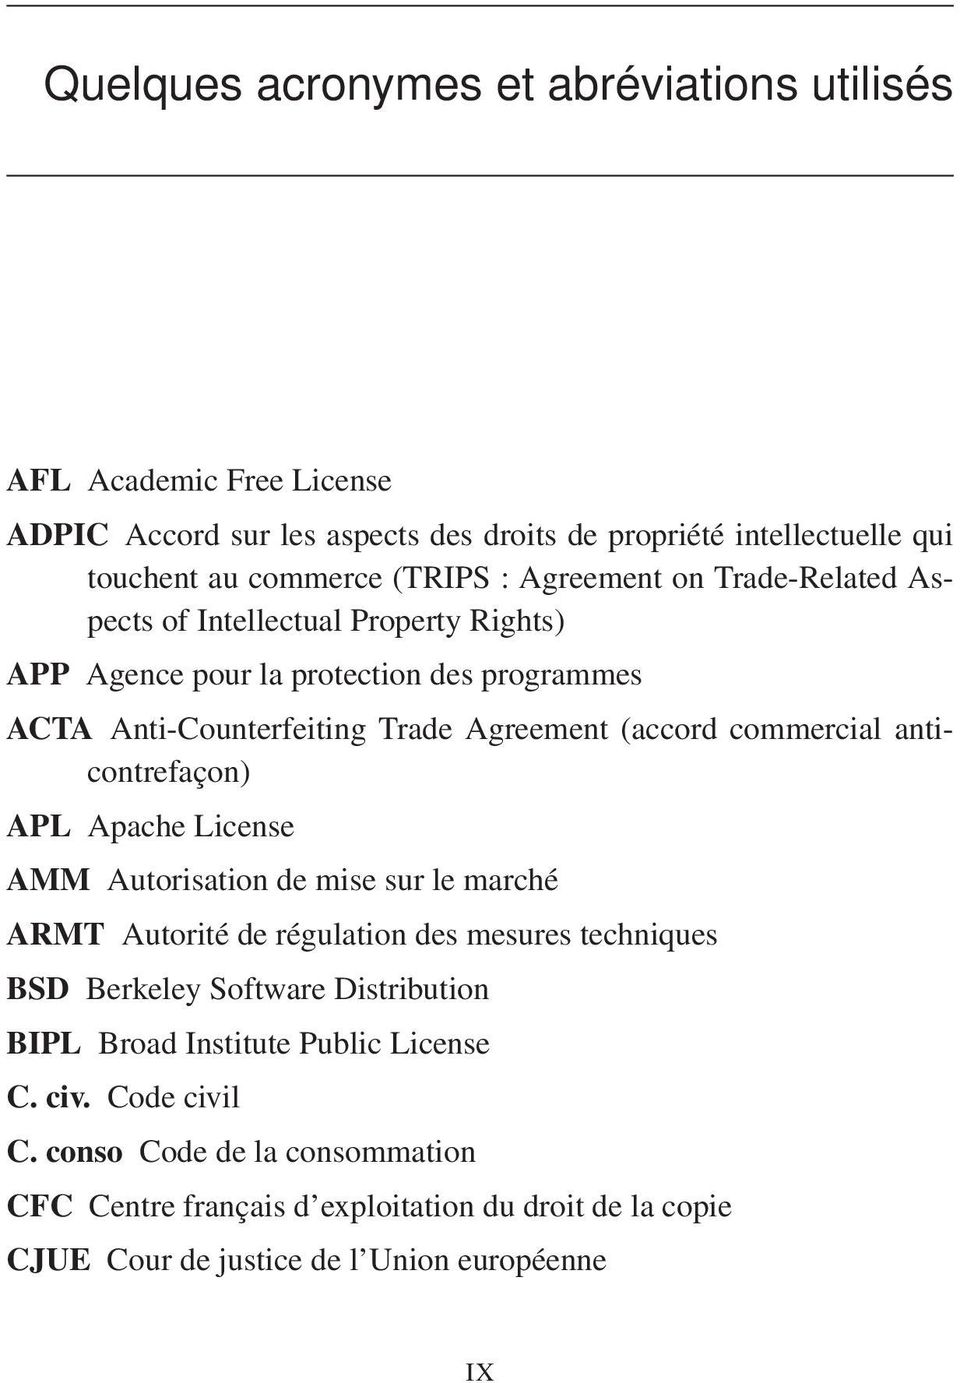 anticontrefaçon) APL Apache License AMM Autorisation de mise sur le marché ARMT Autorité de régulation des mesures techniques BSD Berkeley Software Distribution BIPL Broad